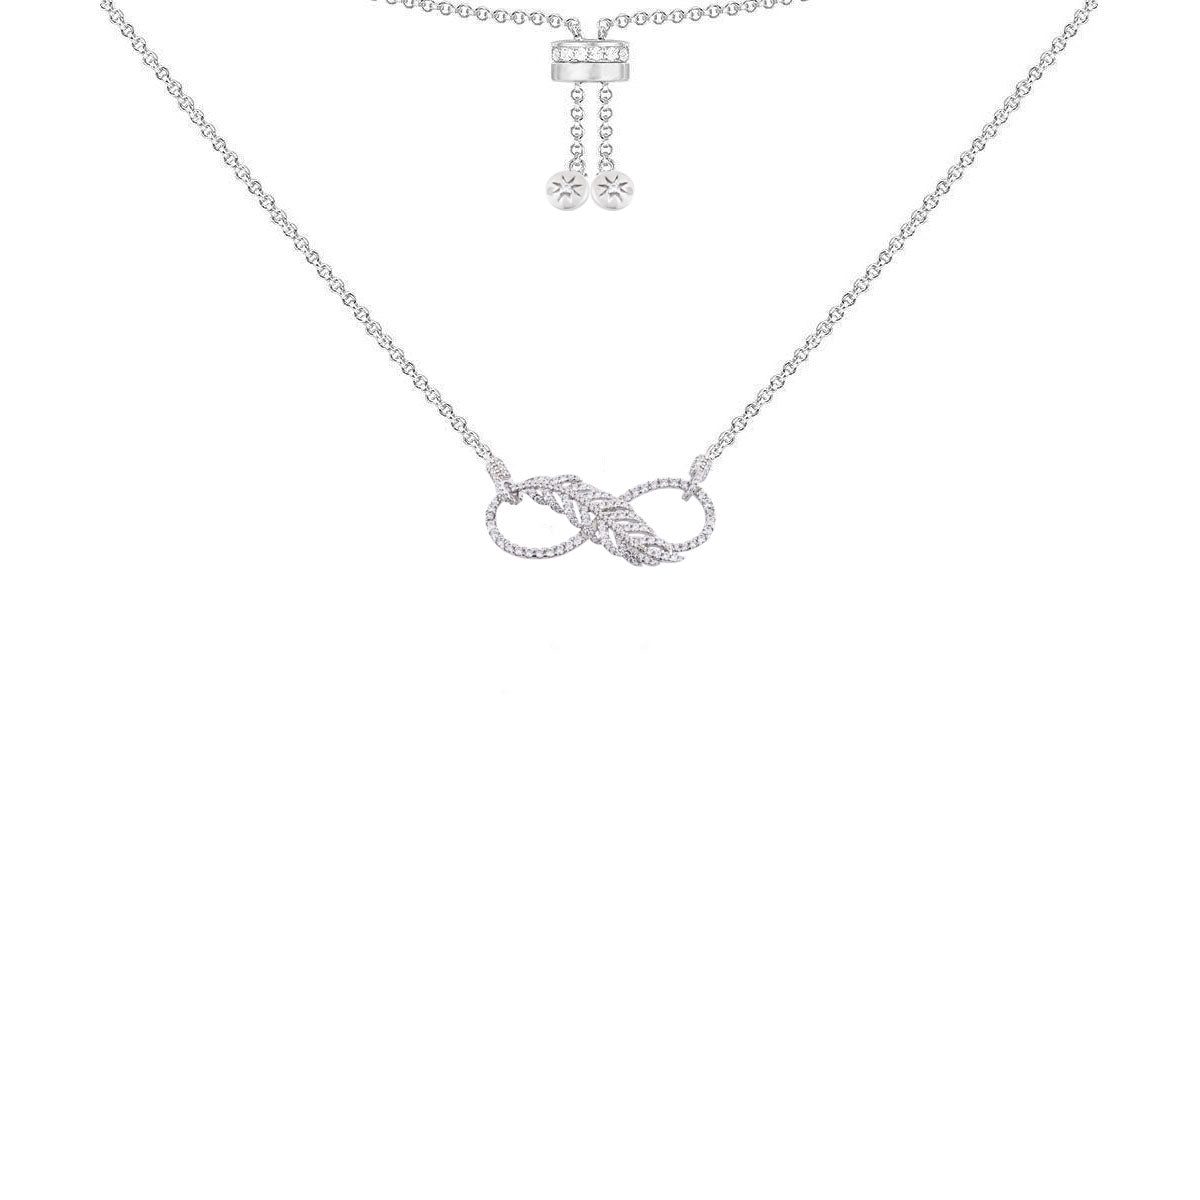 Necklace N1297 - 925 Sterling Silver